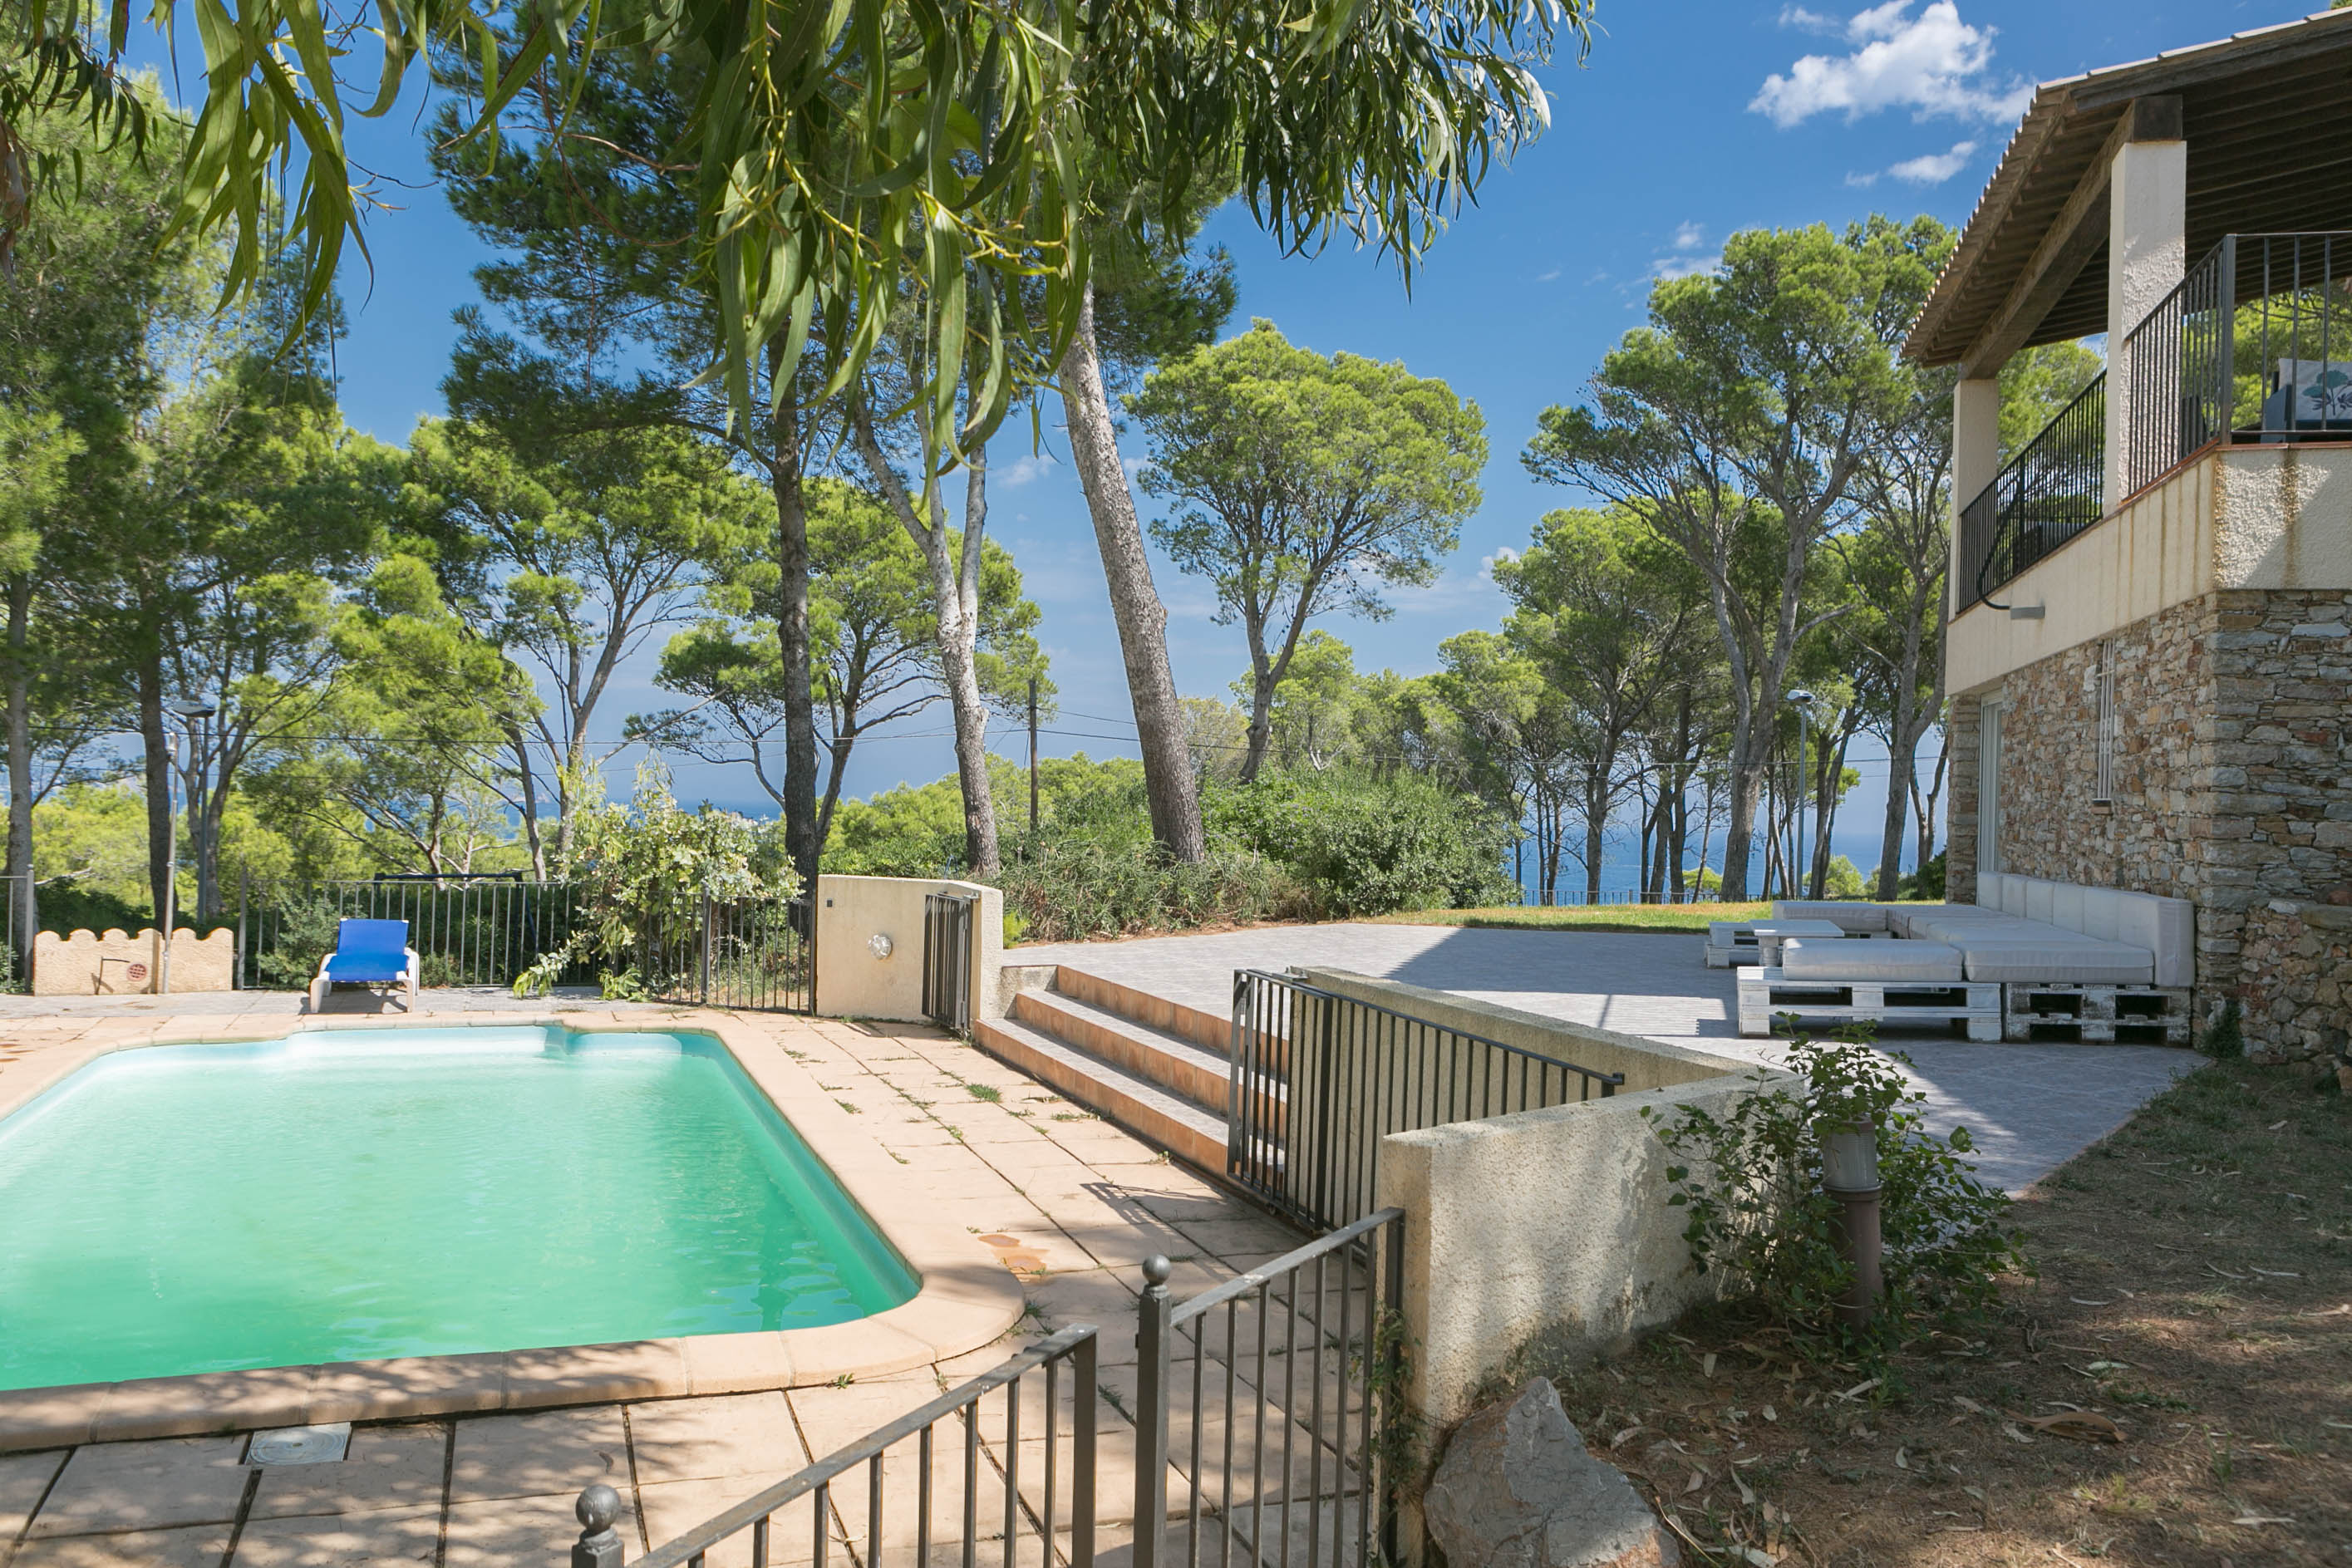 6 bedroom villa in Begur sea views close to the beach and  (Ref:H40) 0